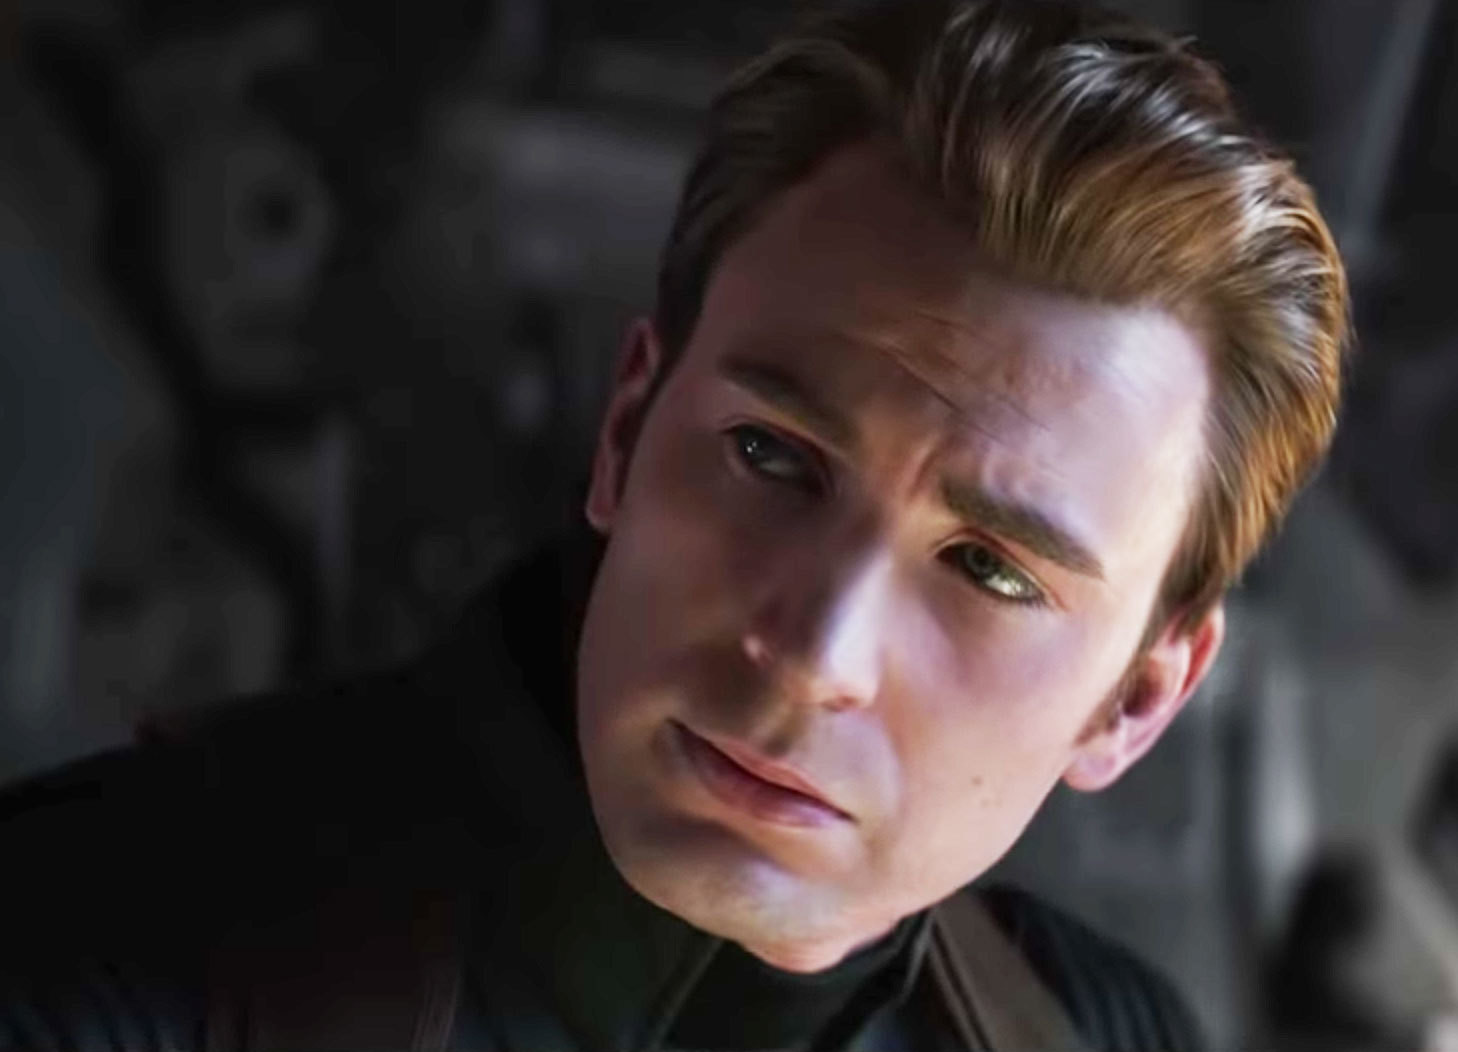 Marvel Secrets The Avengers: Endgame Trailer Chose To Keep Hidden